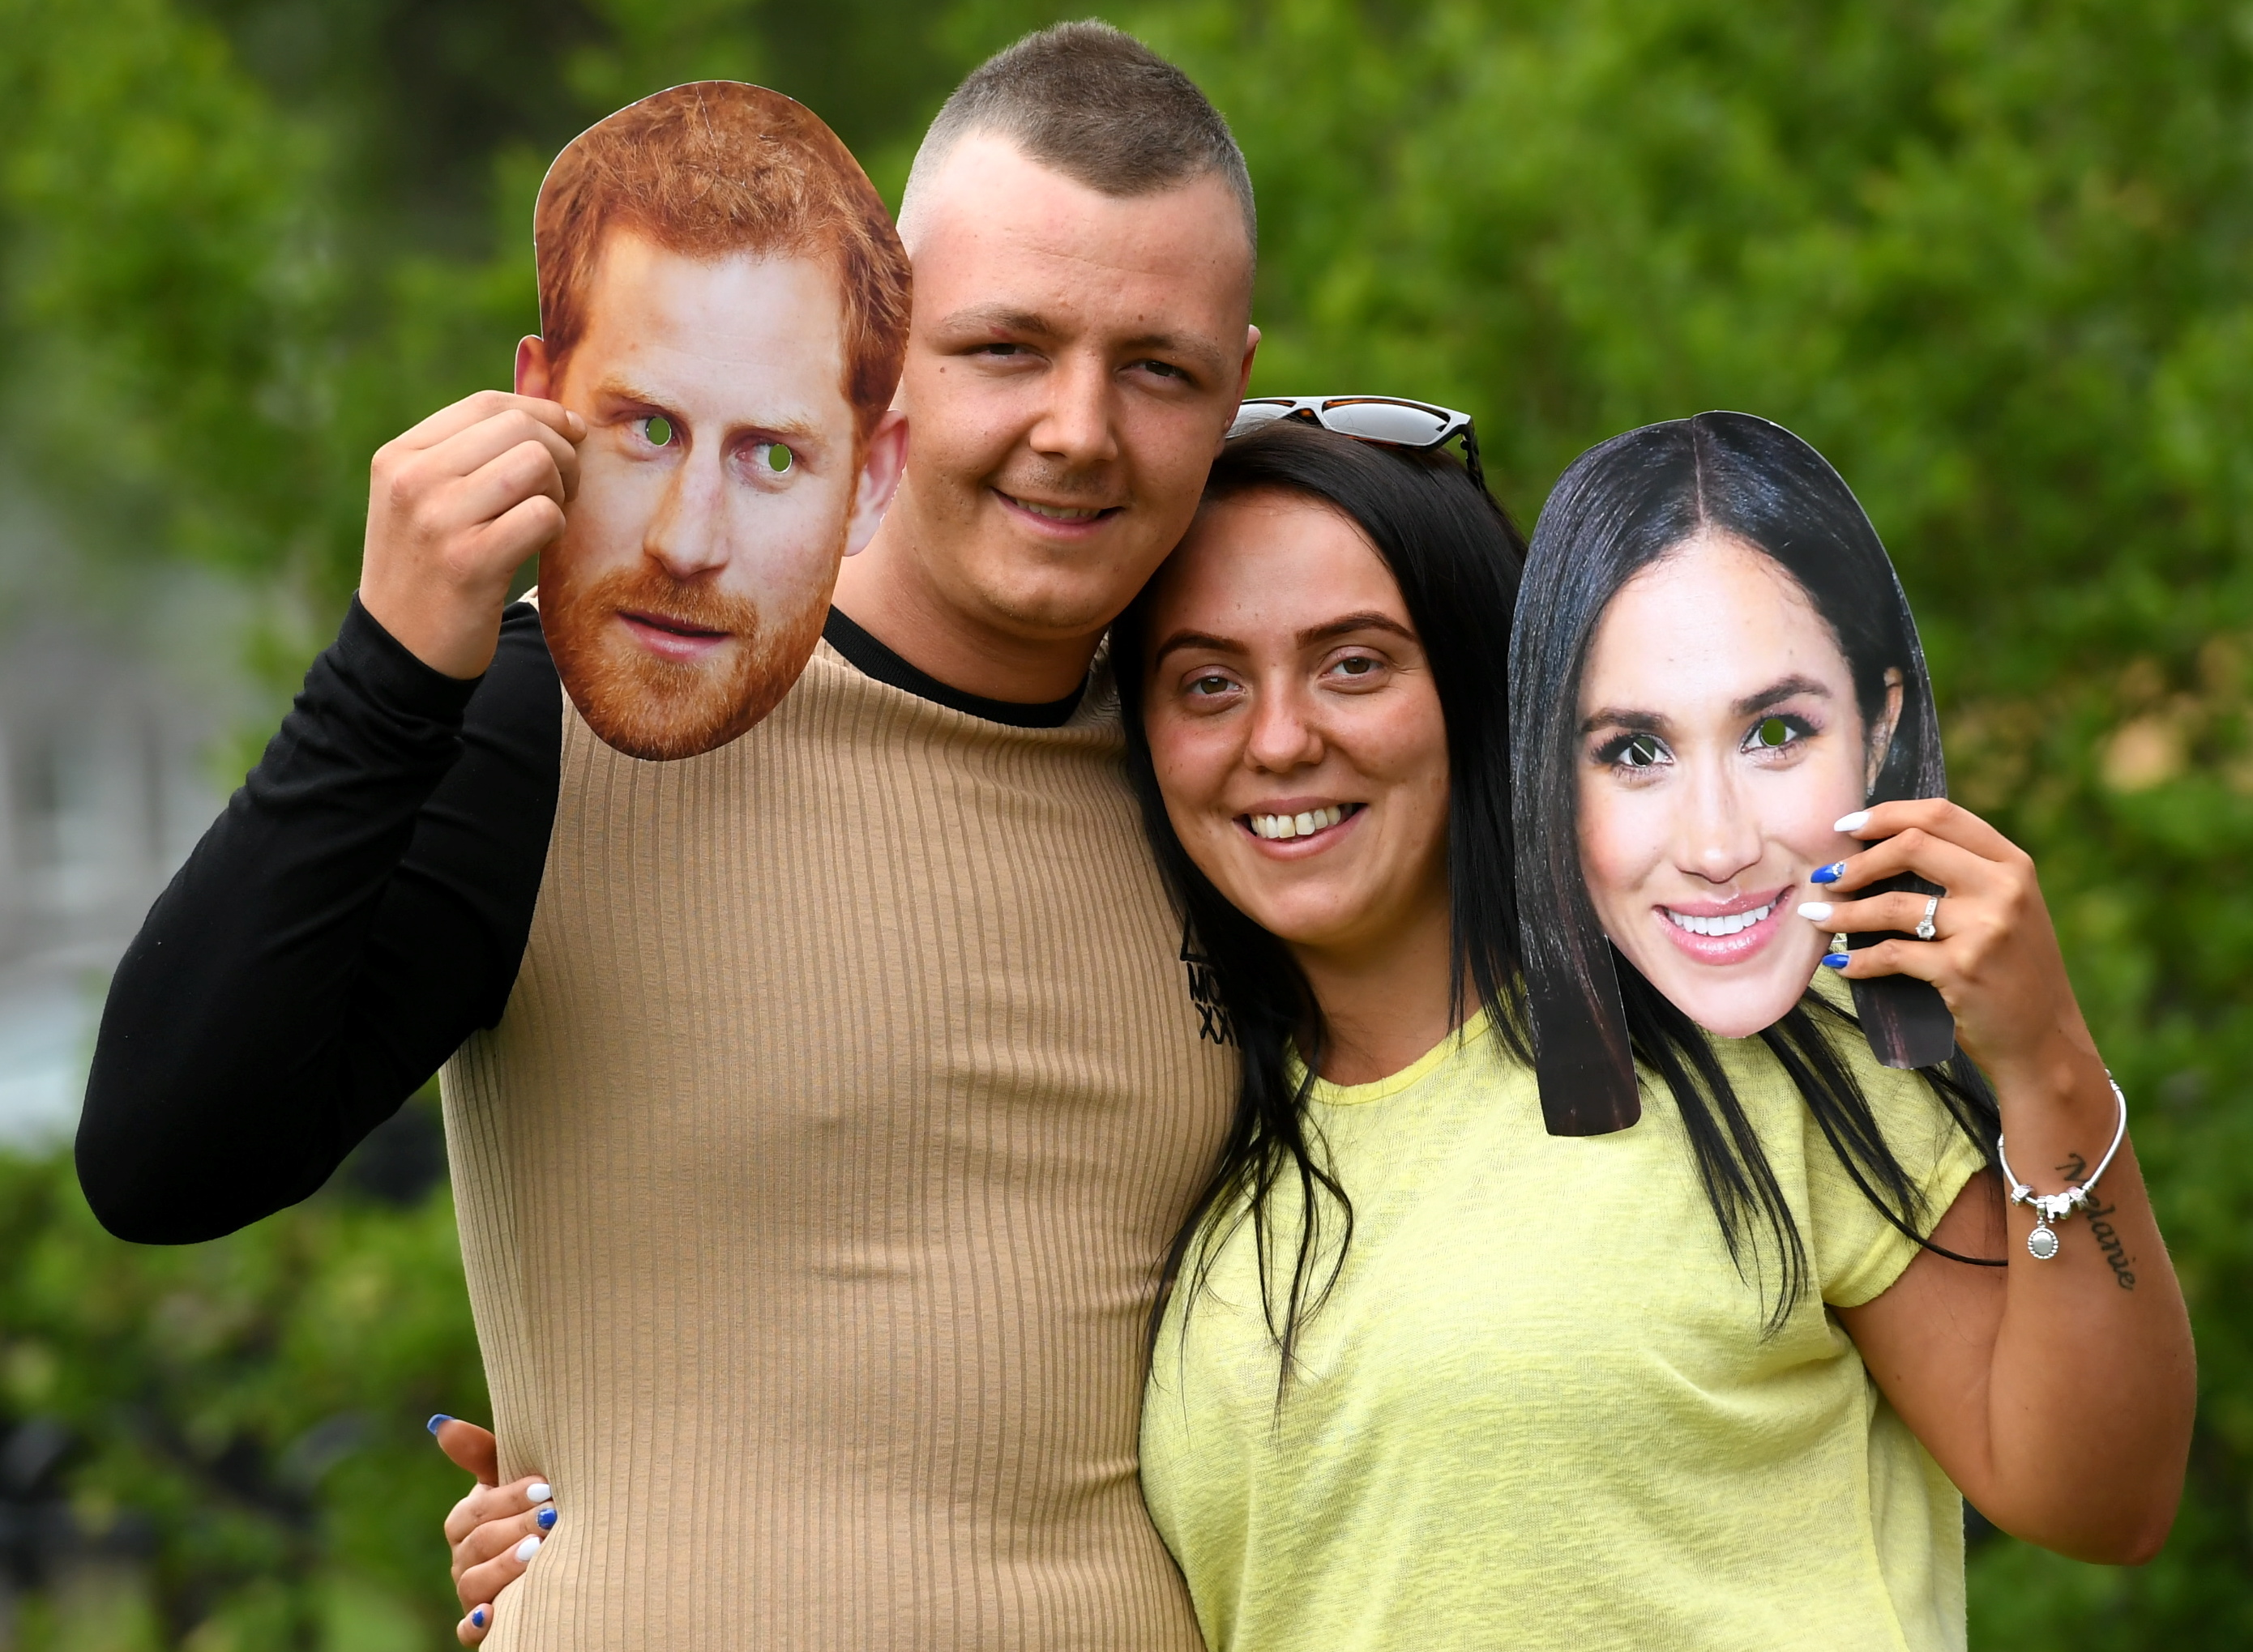 Jordan Thomson and Melaine Adams who are getting married on Saturday, the same day as Harry and Meghan.